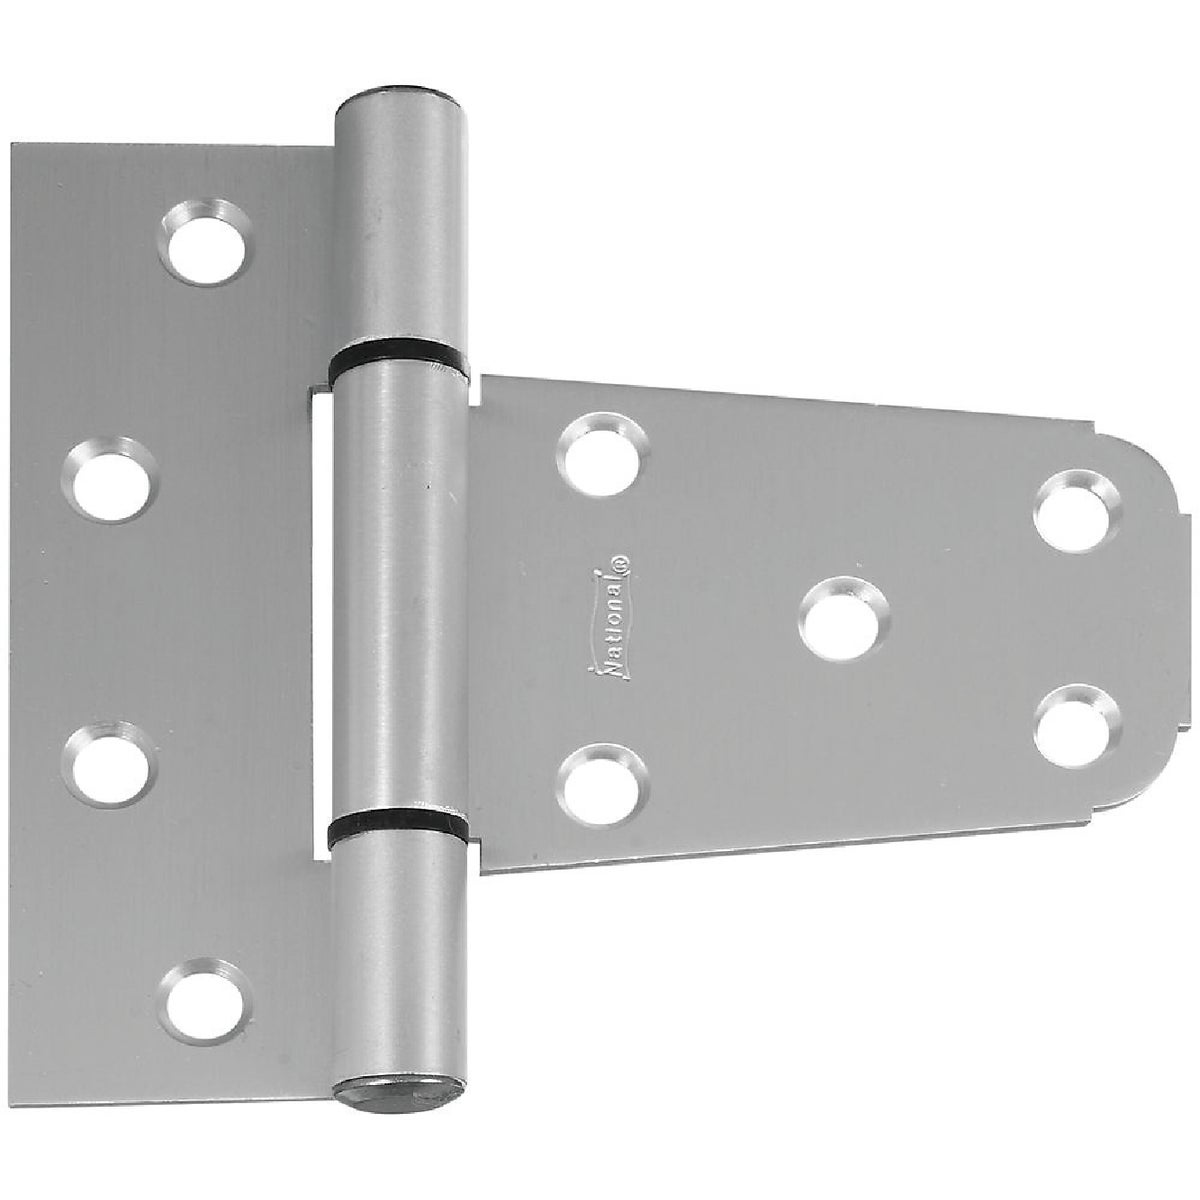 "3-1/2"" ALUM GATE HINGE - N342576 by National Mfg Co"